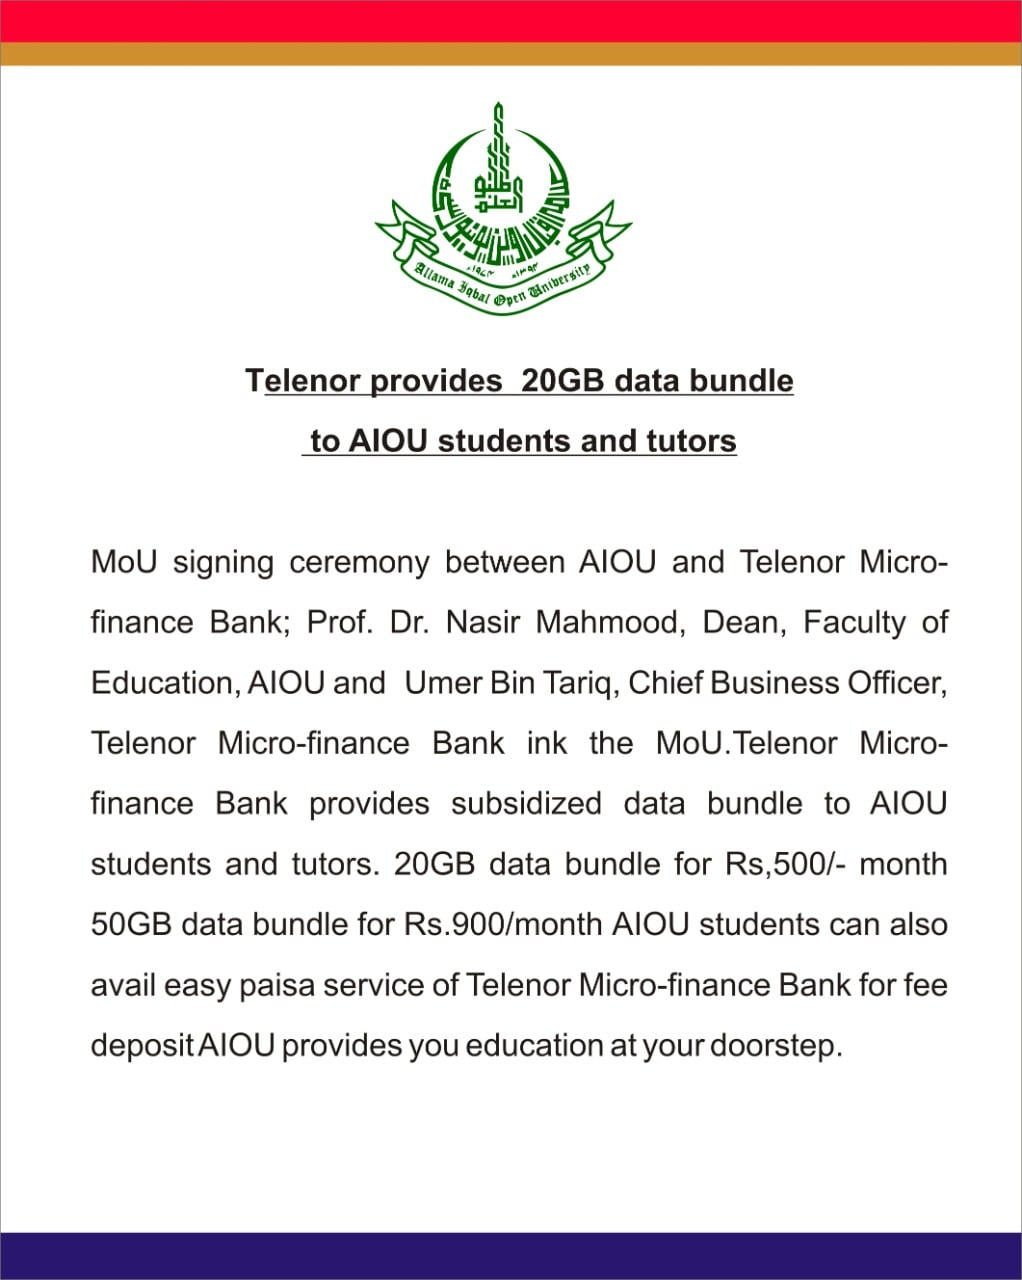 Telenor Provides 20 GB Data Bundle to AIOU Students and Tutors